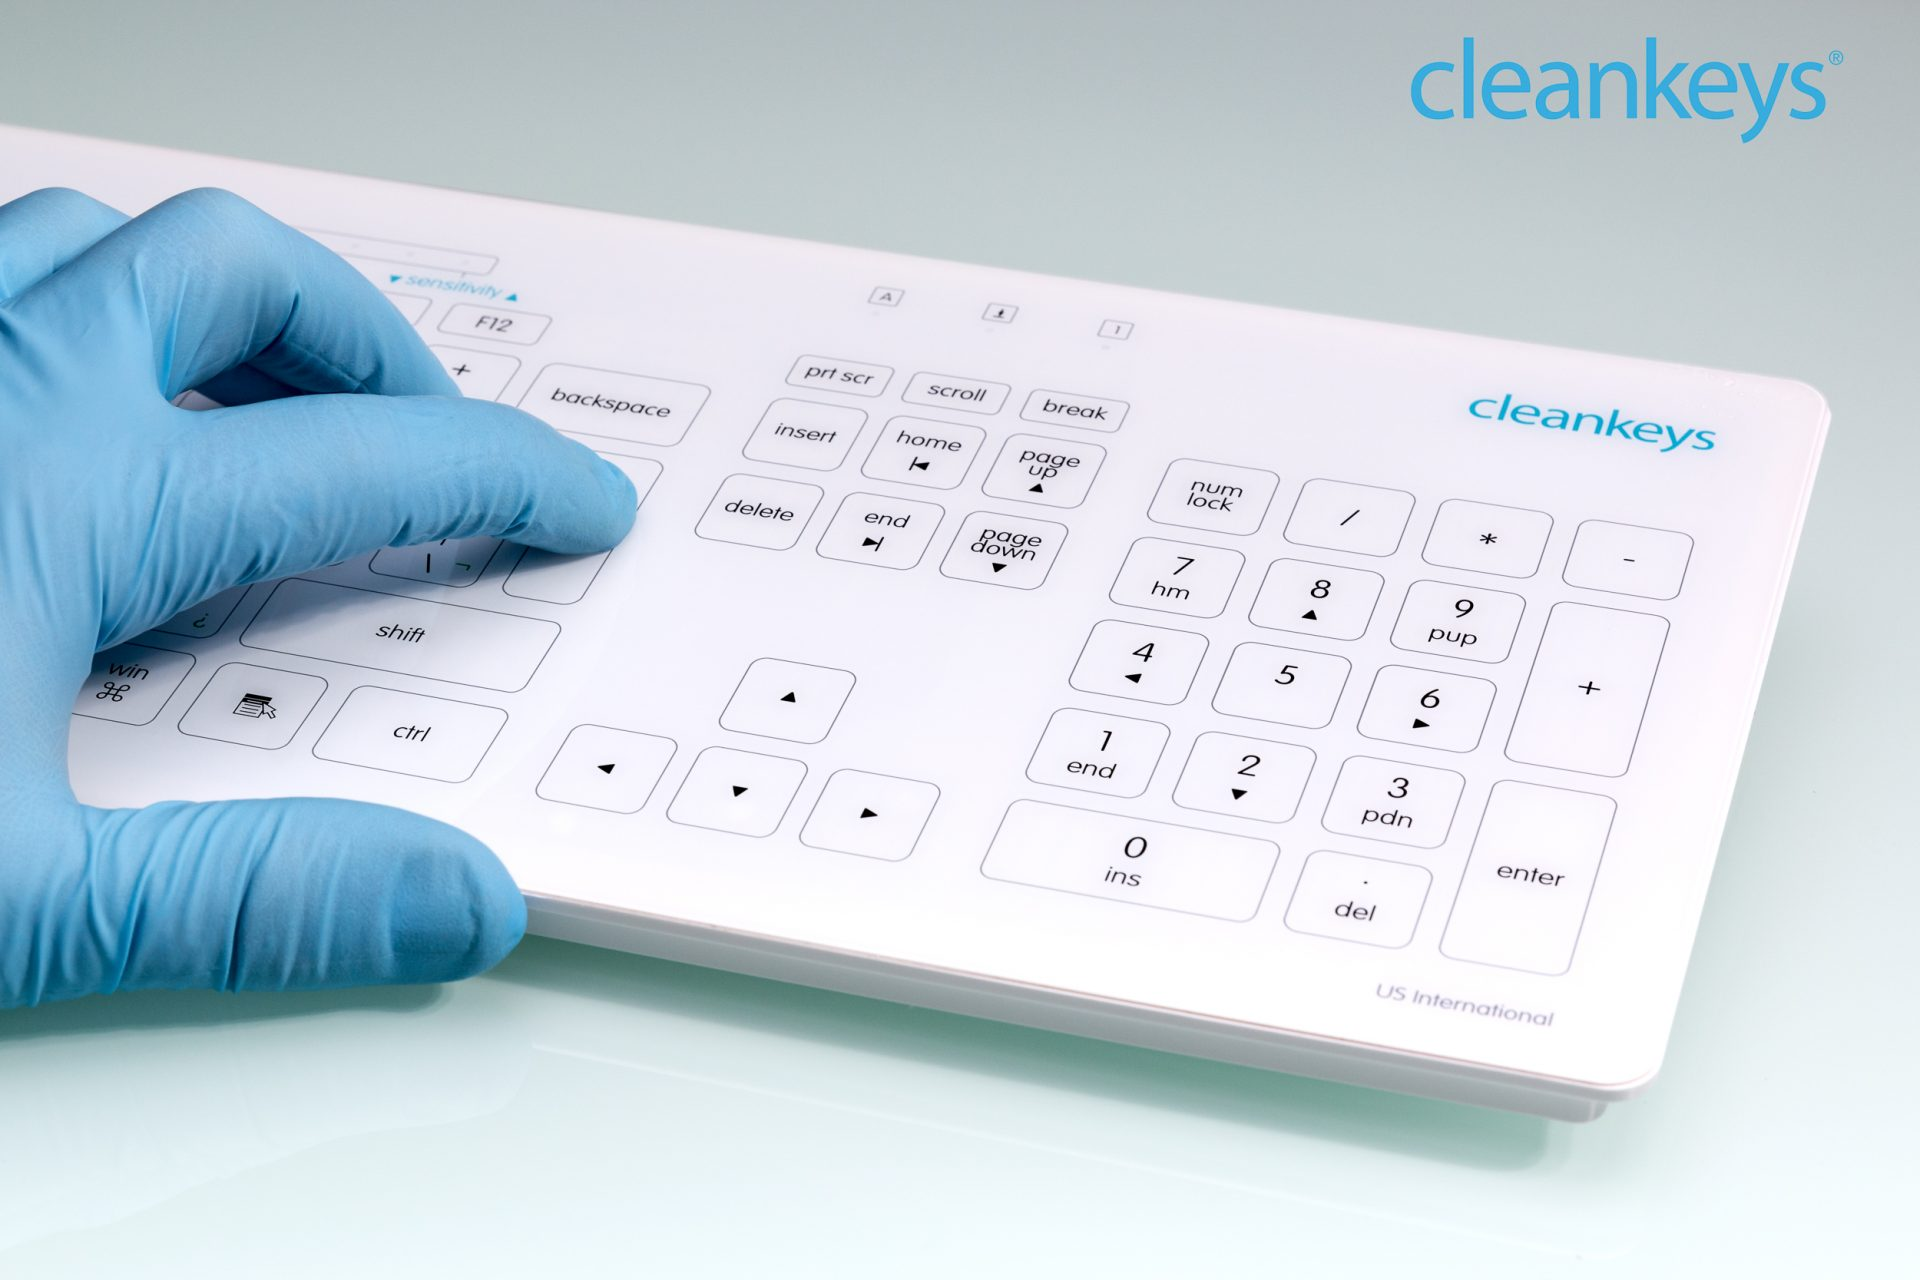 Cleankeys Glastastatur